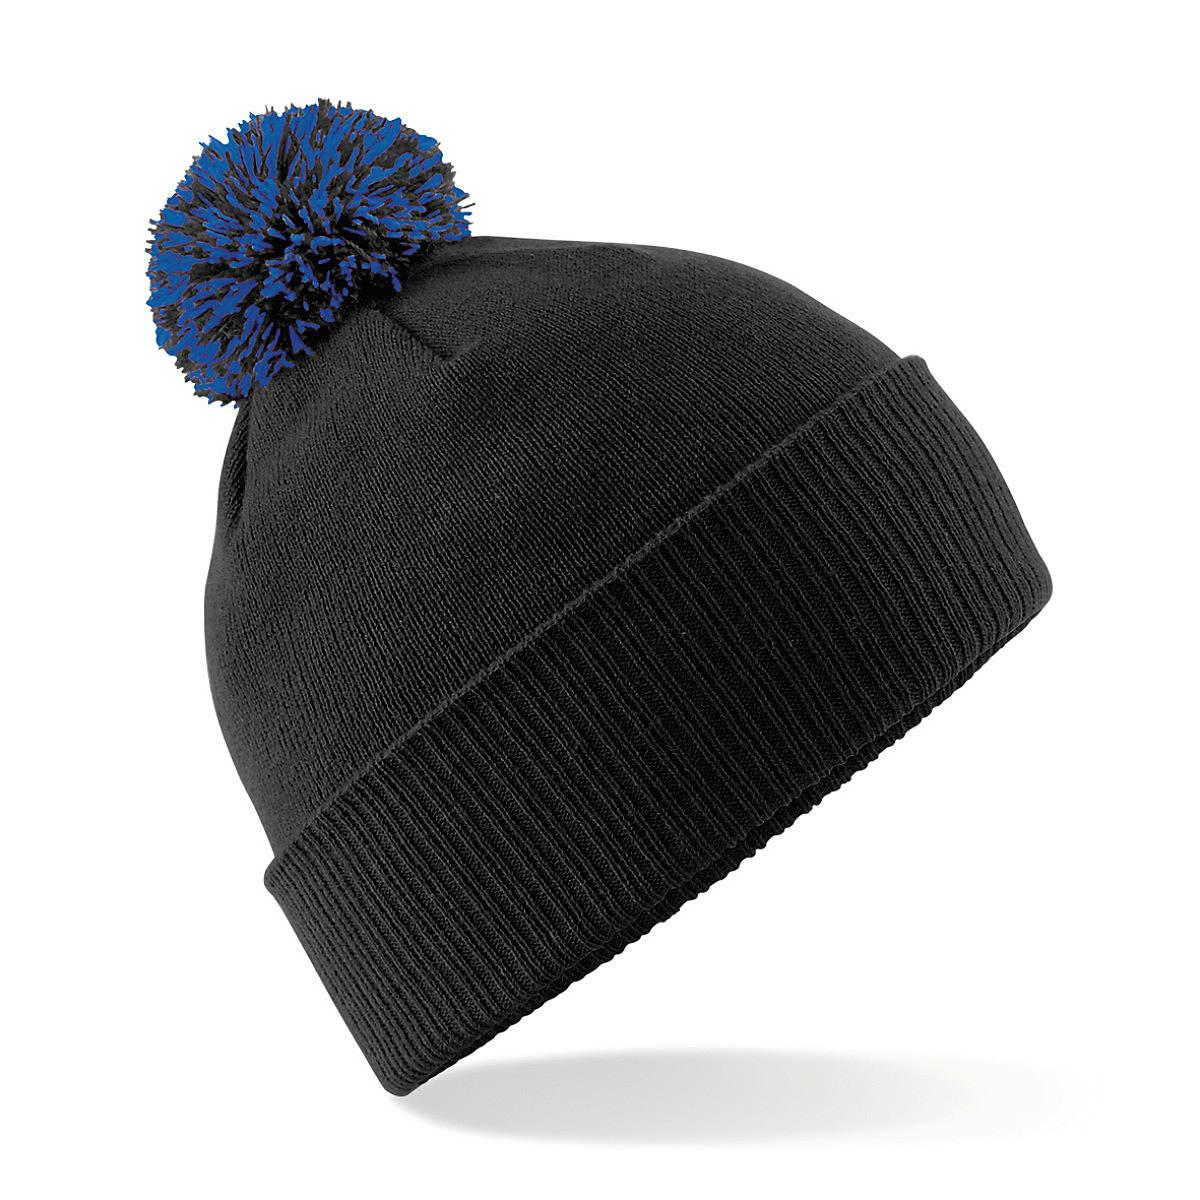 Beechfield Snowstar Beanie Hat in Black / Bright Royal (Product Code: B450)